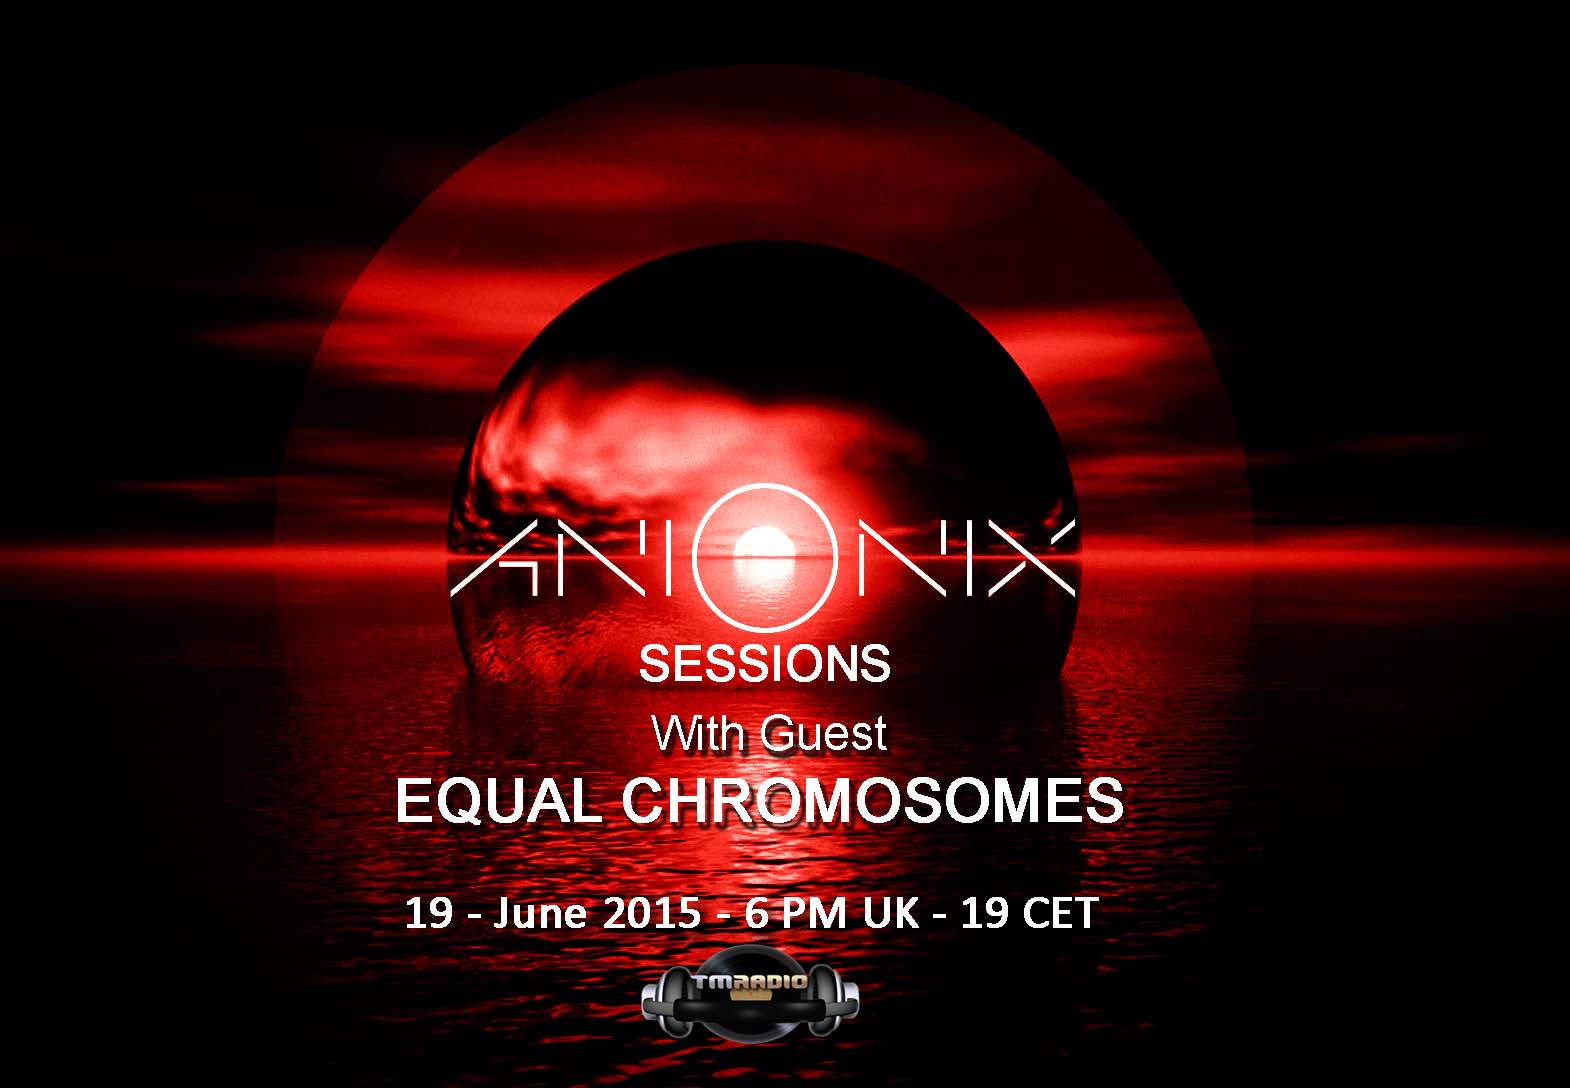 download → Ani Onix & Equal Chromosomes - Ani Onix Sessions on TM RADIO - 19-Jun-2015